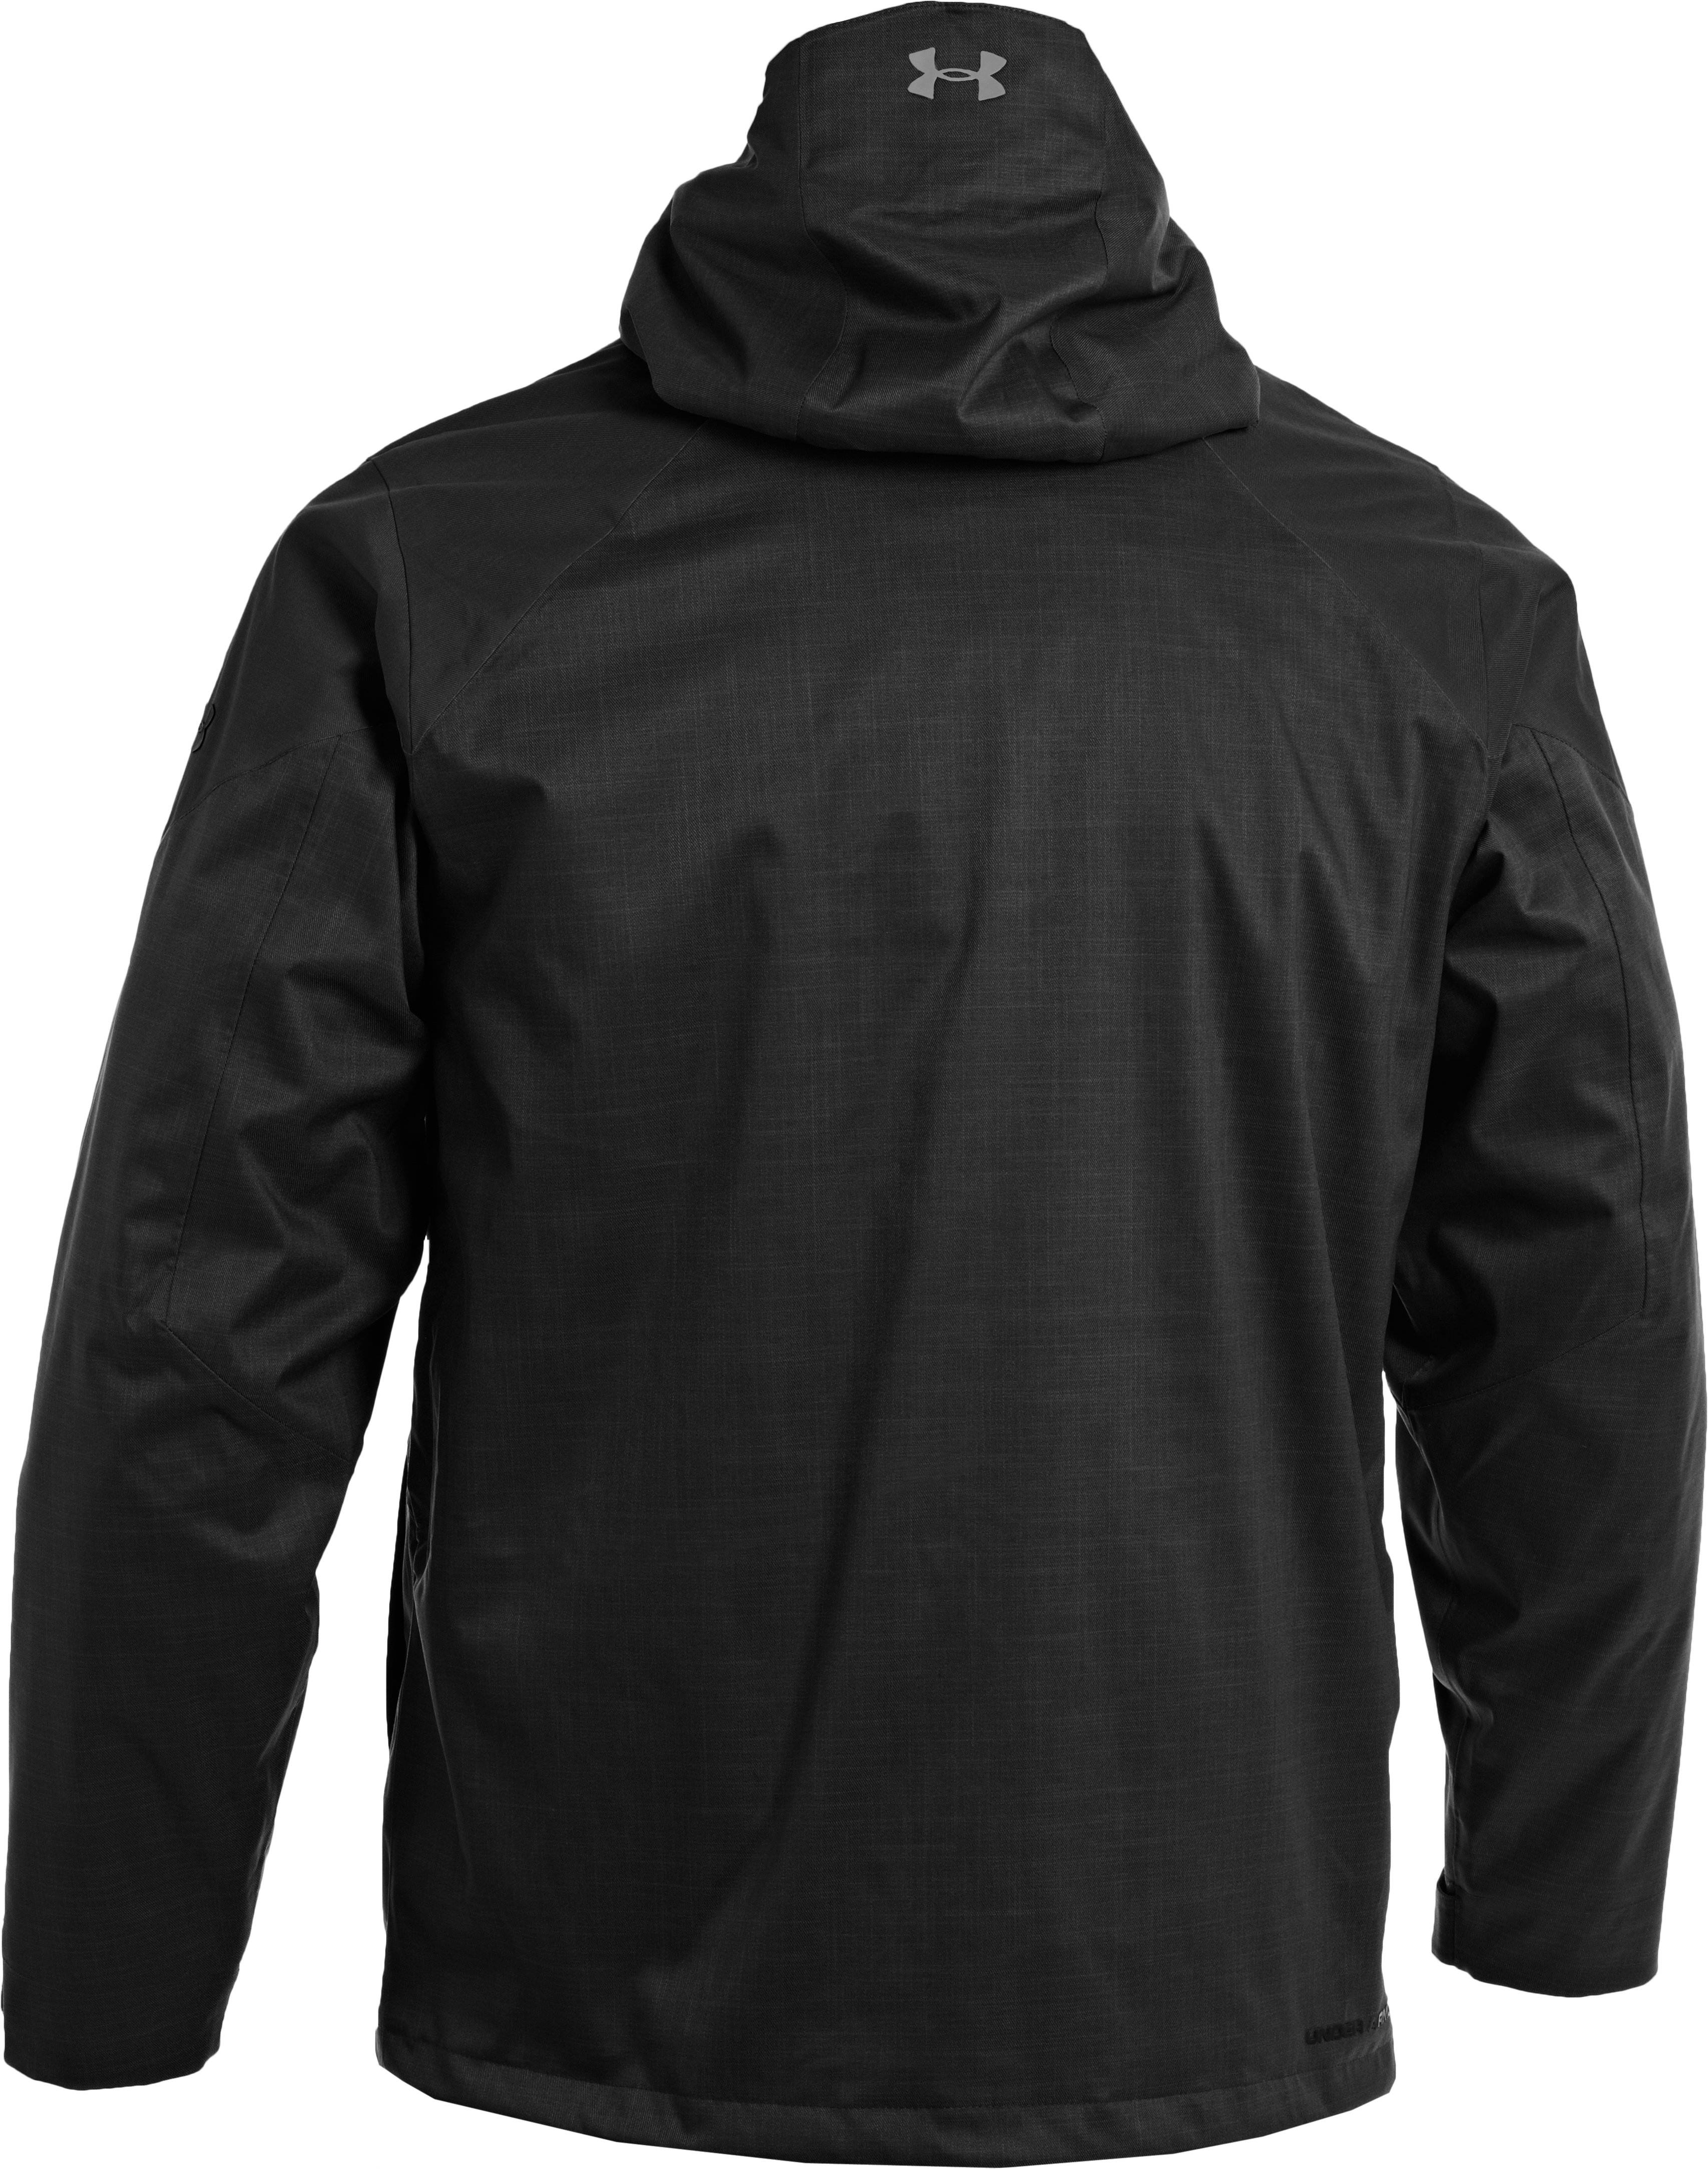 Men's ColdGear® Infrared Tripper 3-in-1 Jacket, Black , undefined